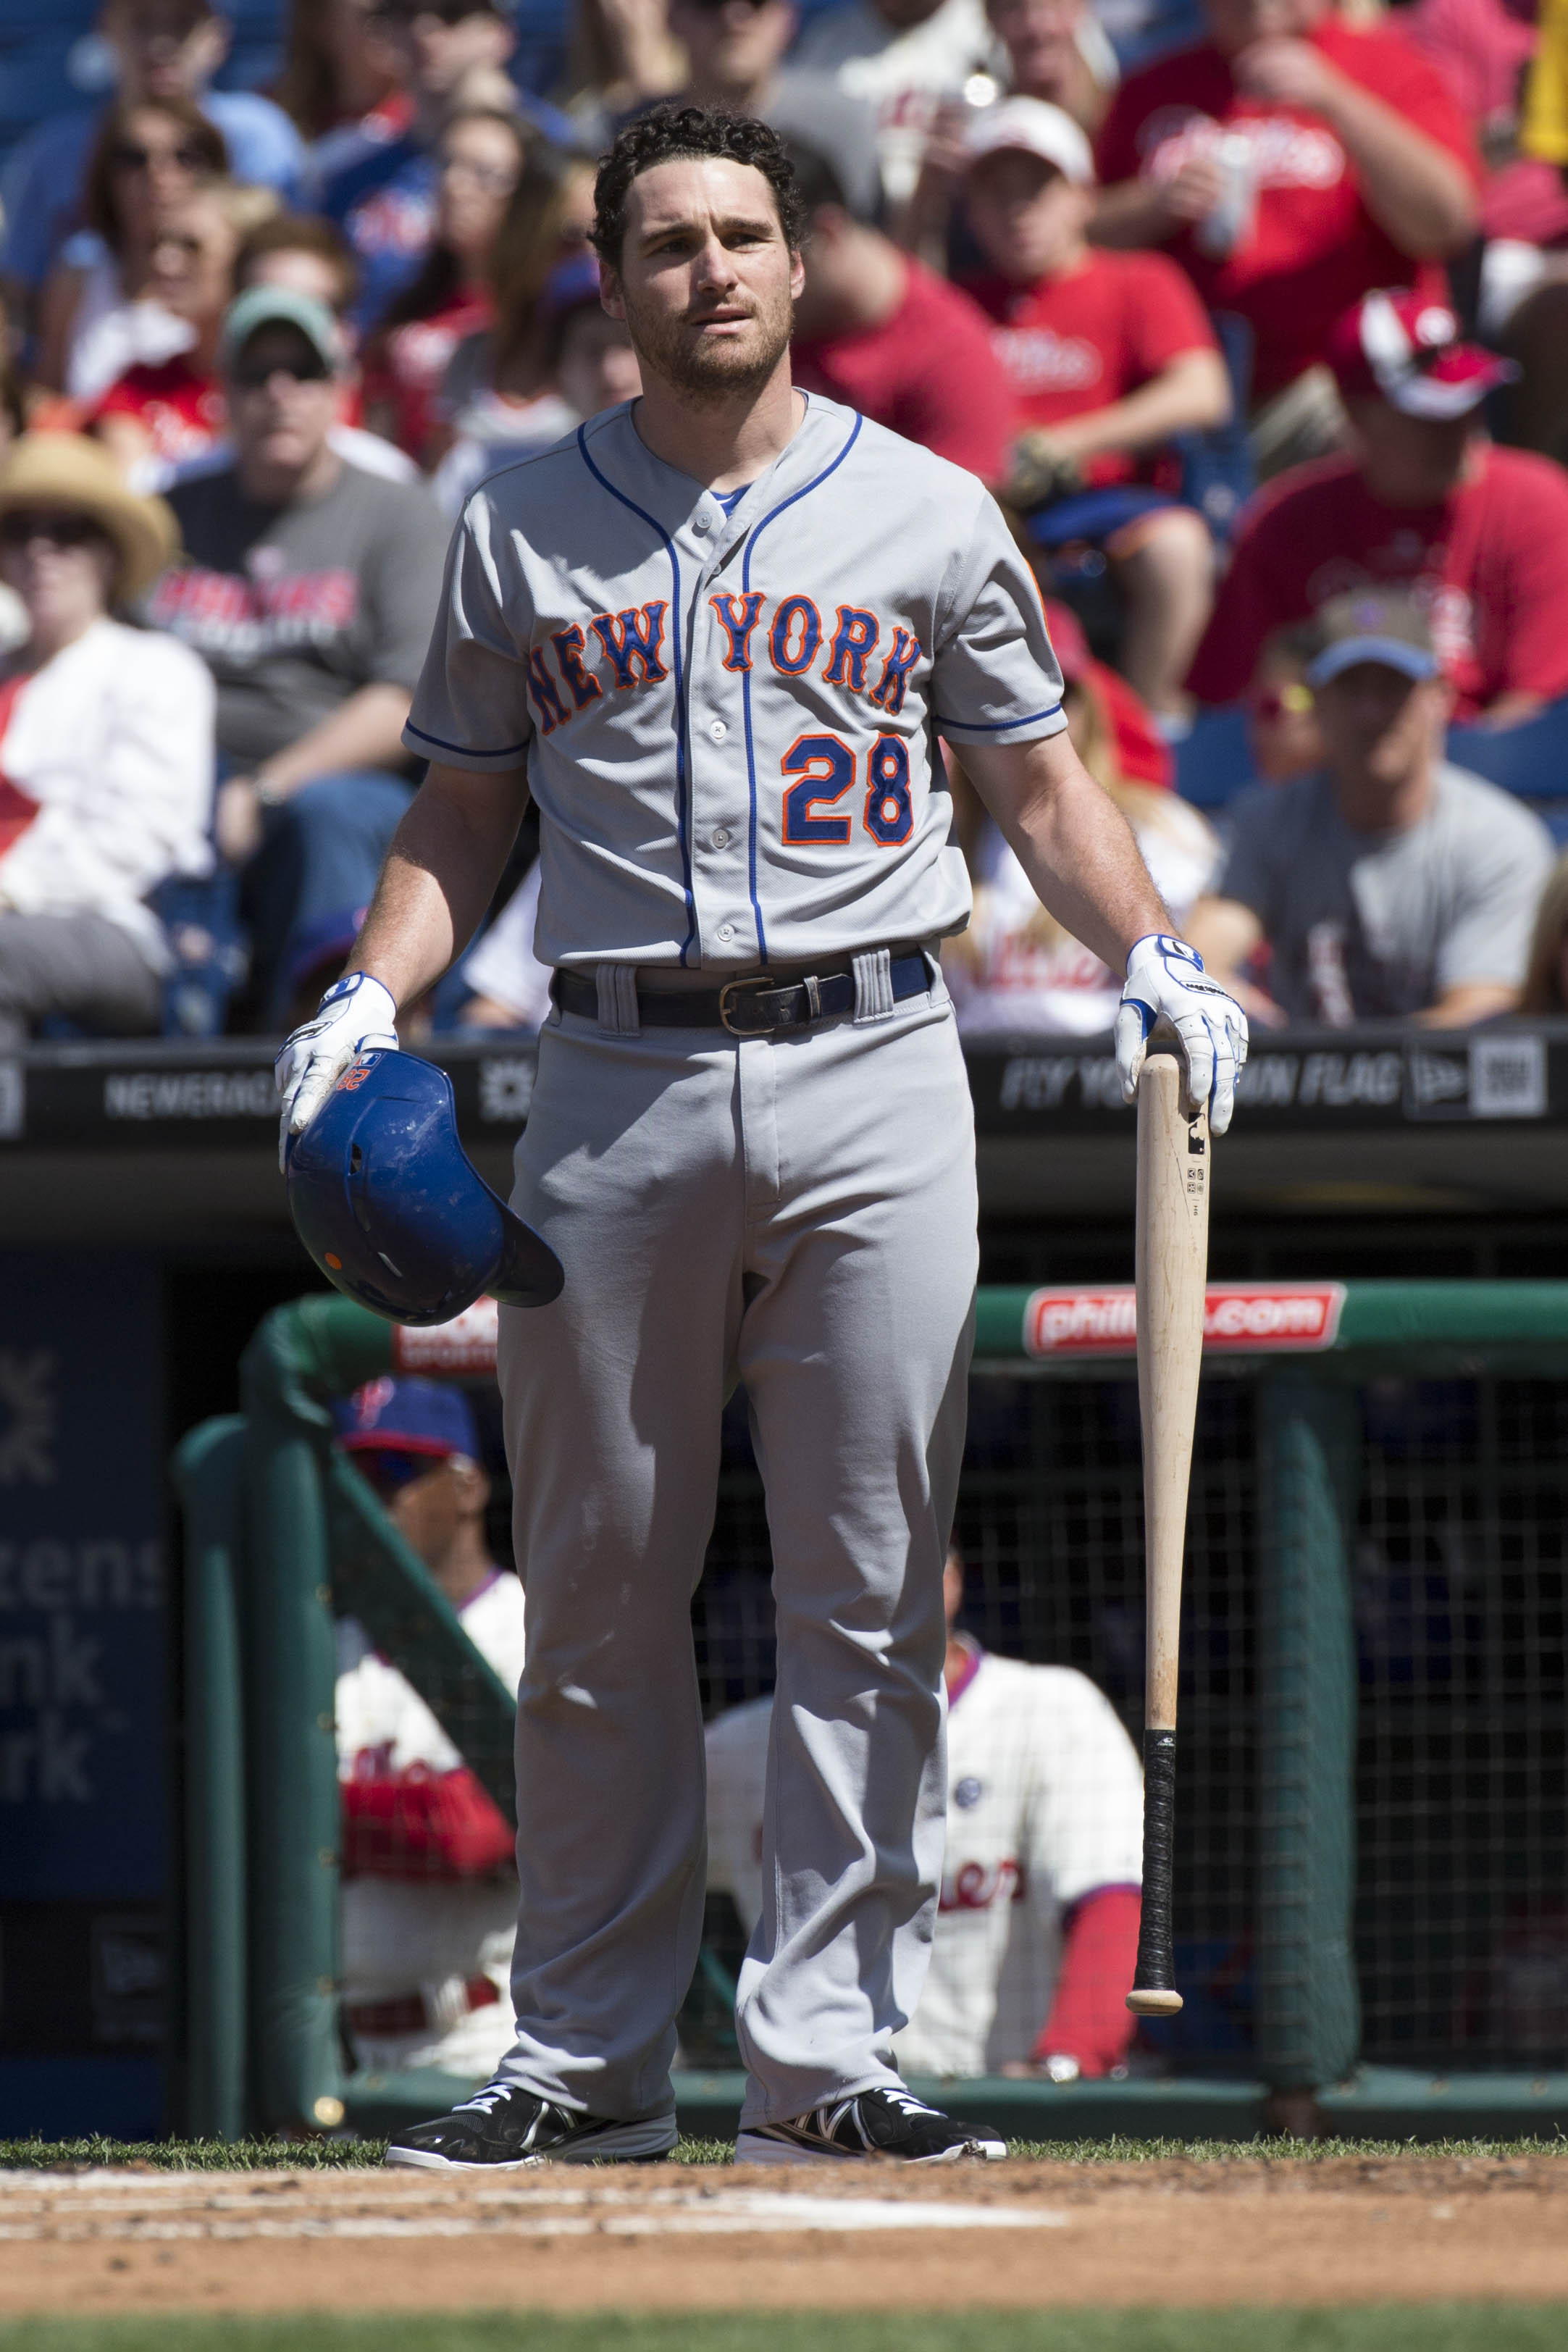 New York Mets' Daniel Murphy during the first inning of a baseball game, Saturday, May 31, 2014, in Philadelphia.